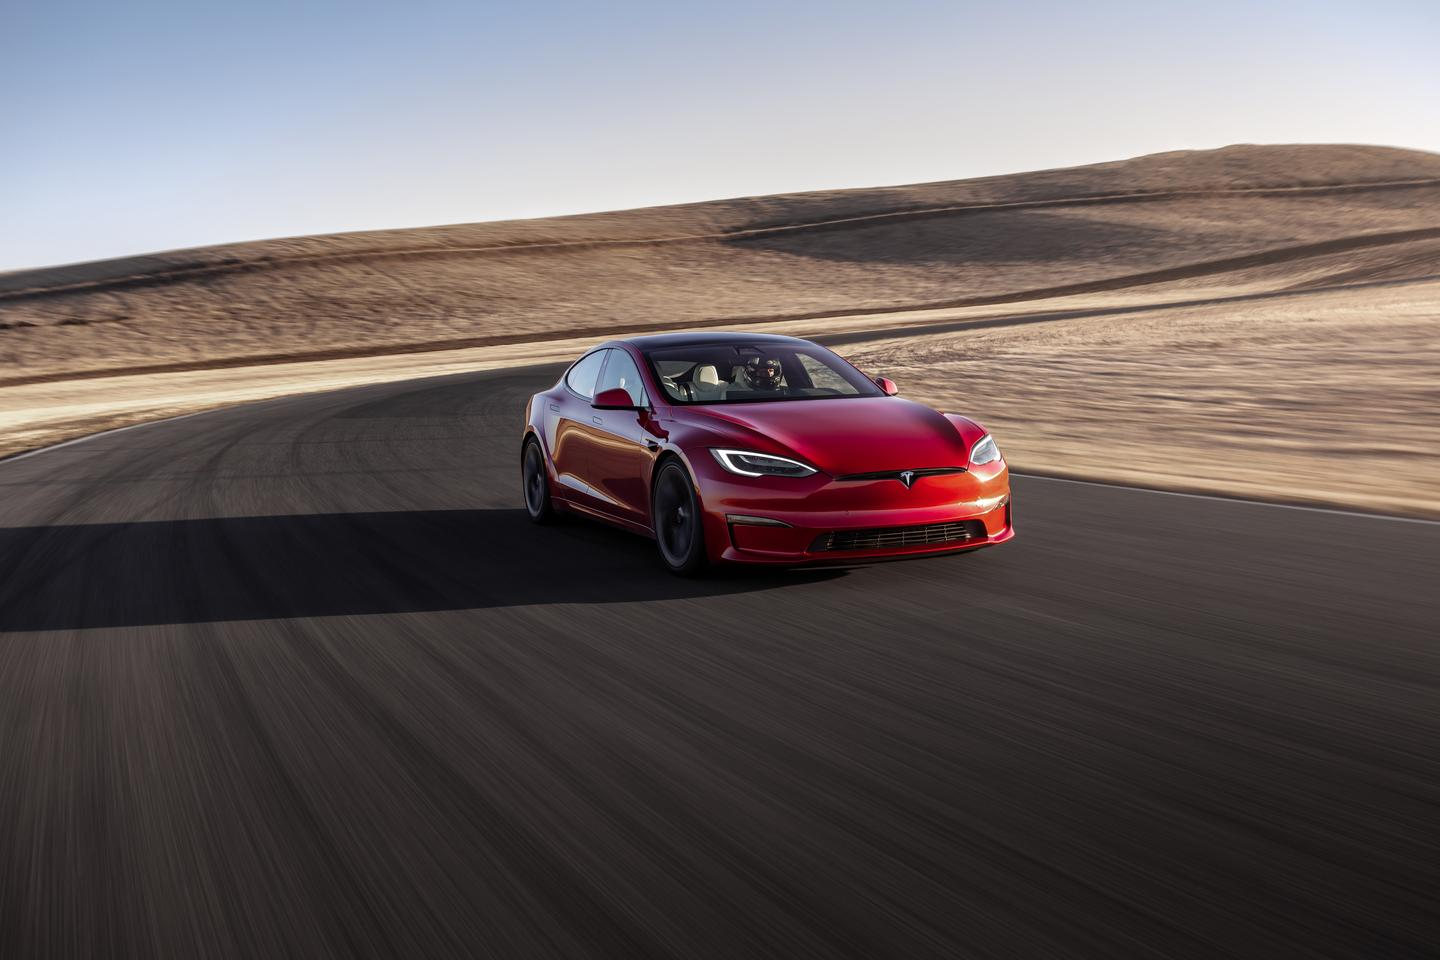 Pricing for the Model S Plaid starts at $129,990